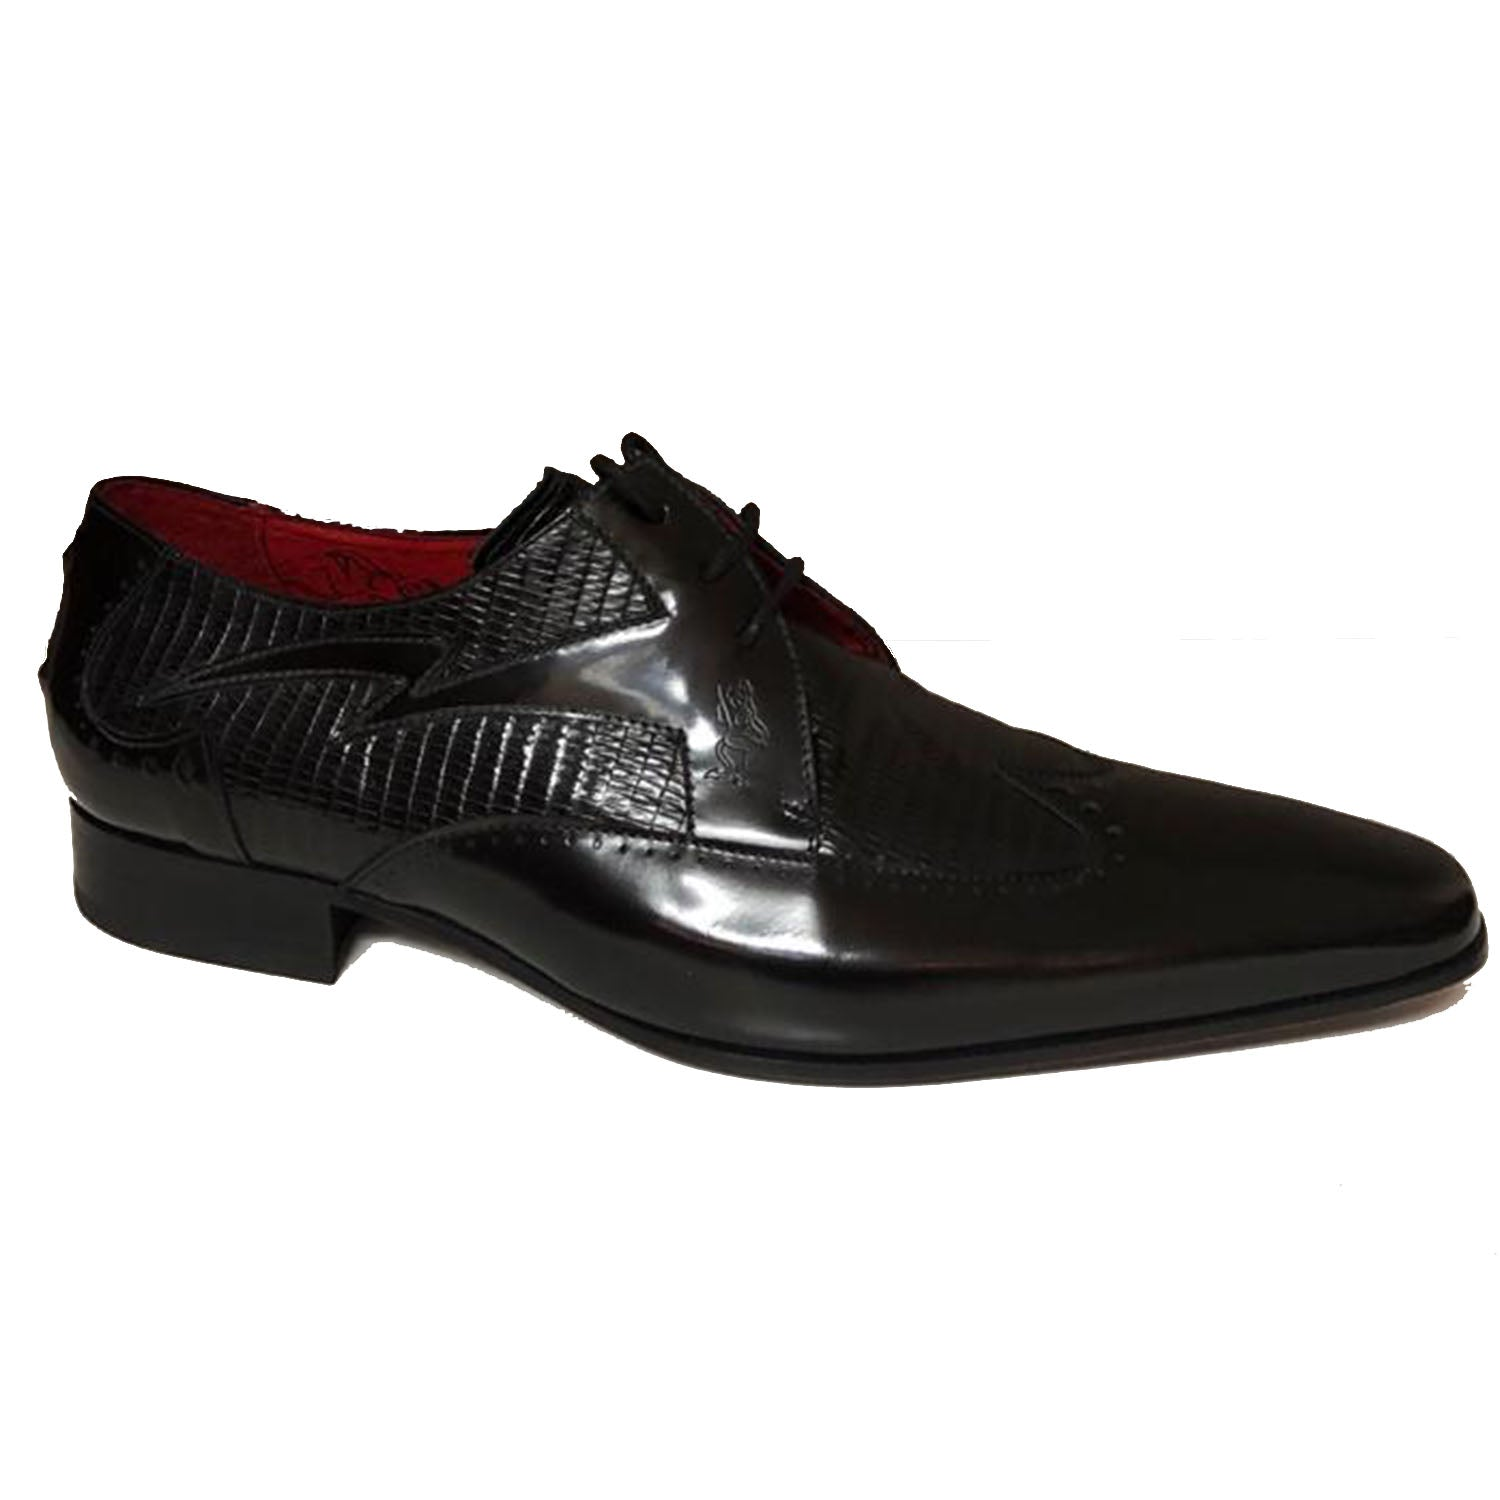 Jeffery West Black Iguana Lace up Shoe